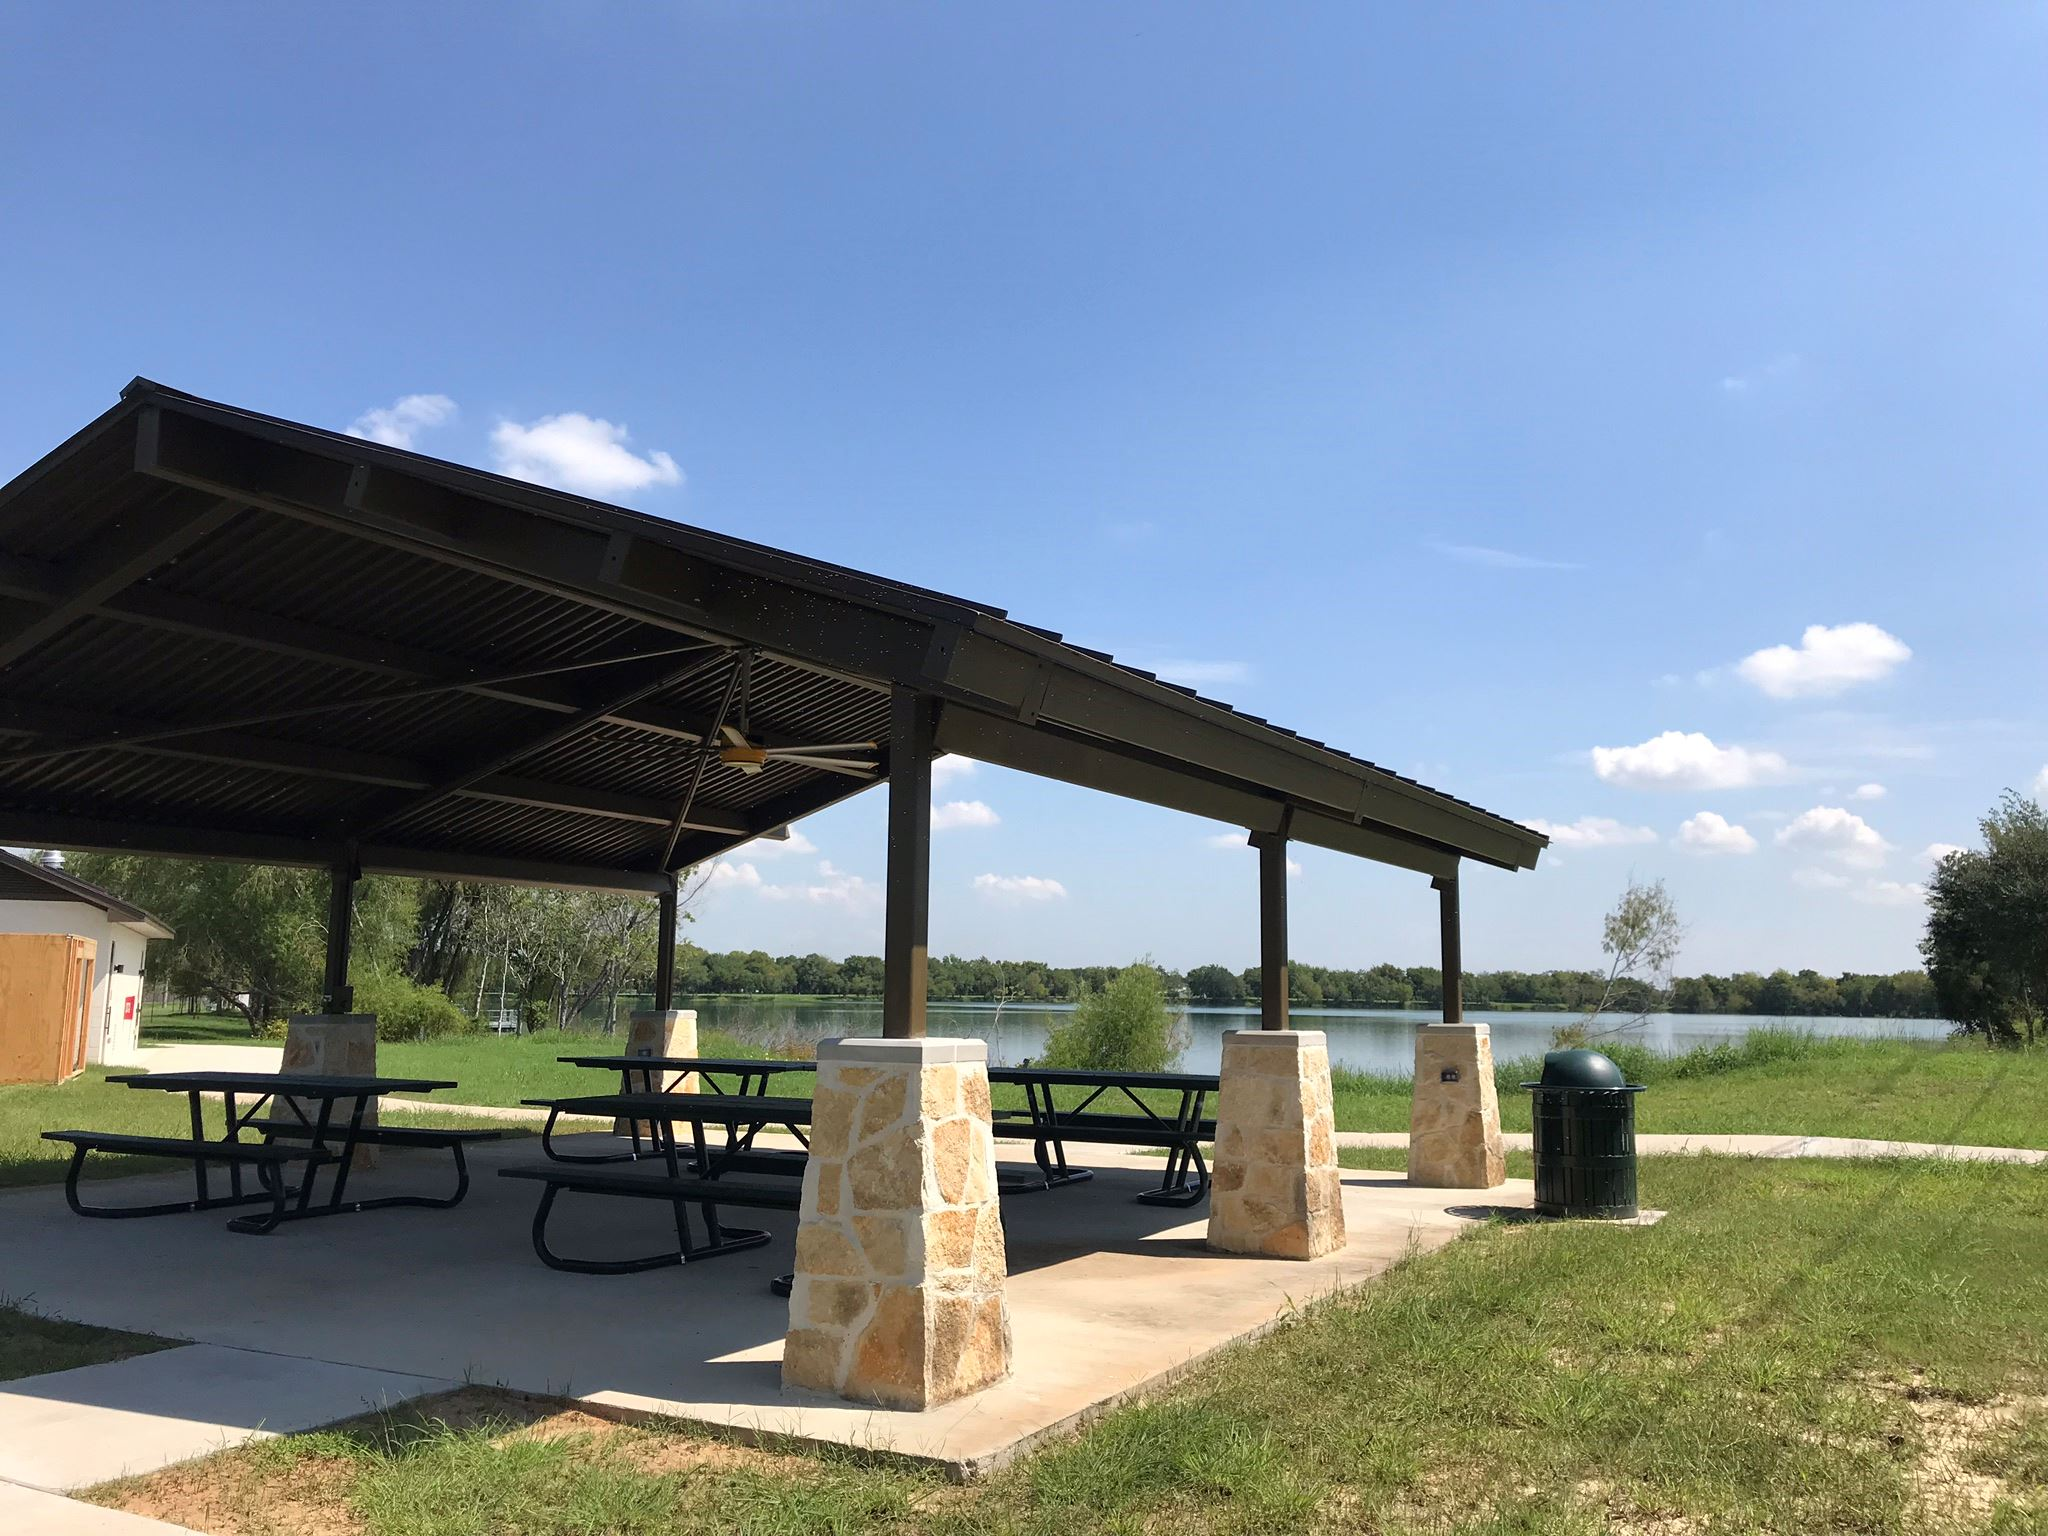 Lake Friendswood Pavilion with barbeque pit